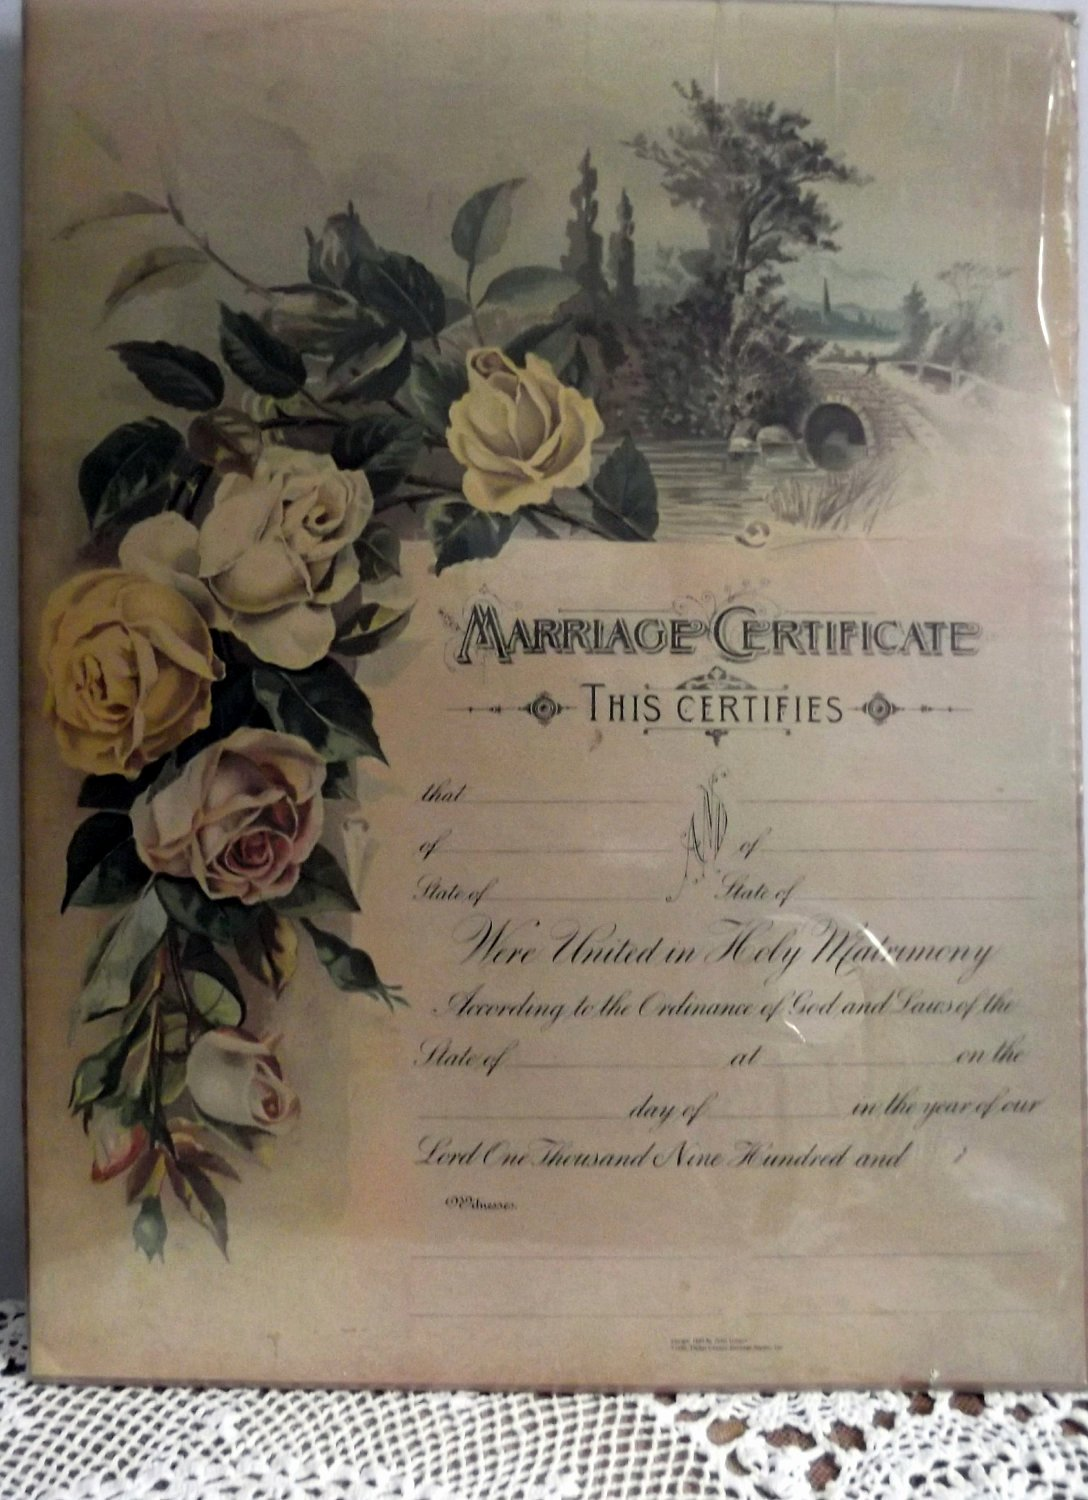 Vintage Marriage Certificate Template Luxury Vintage Marriage Certificate Poster Replicated From 1889